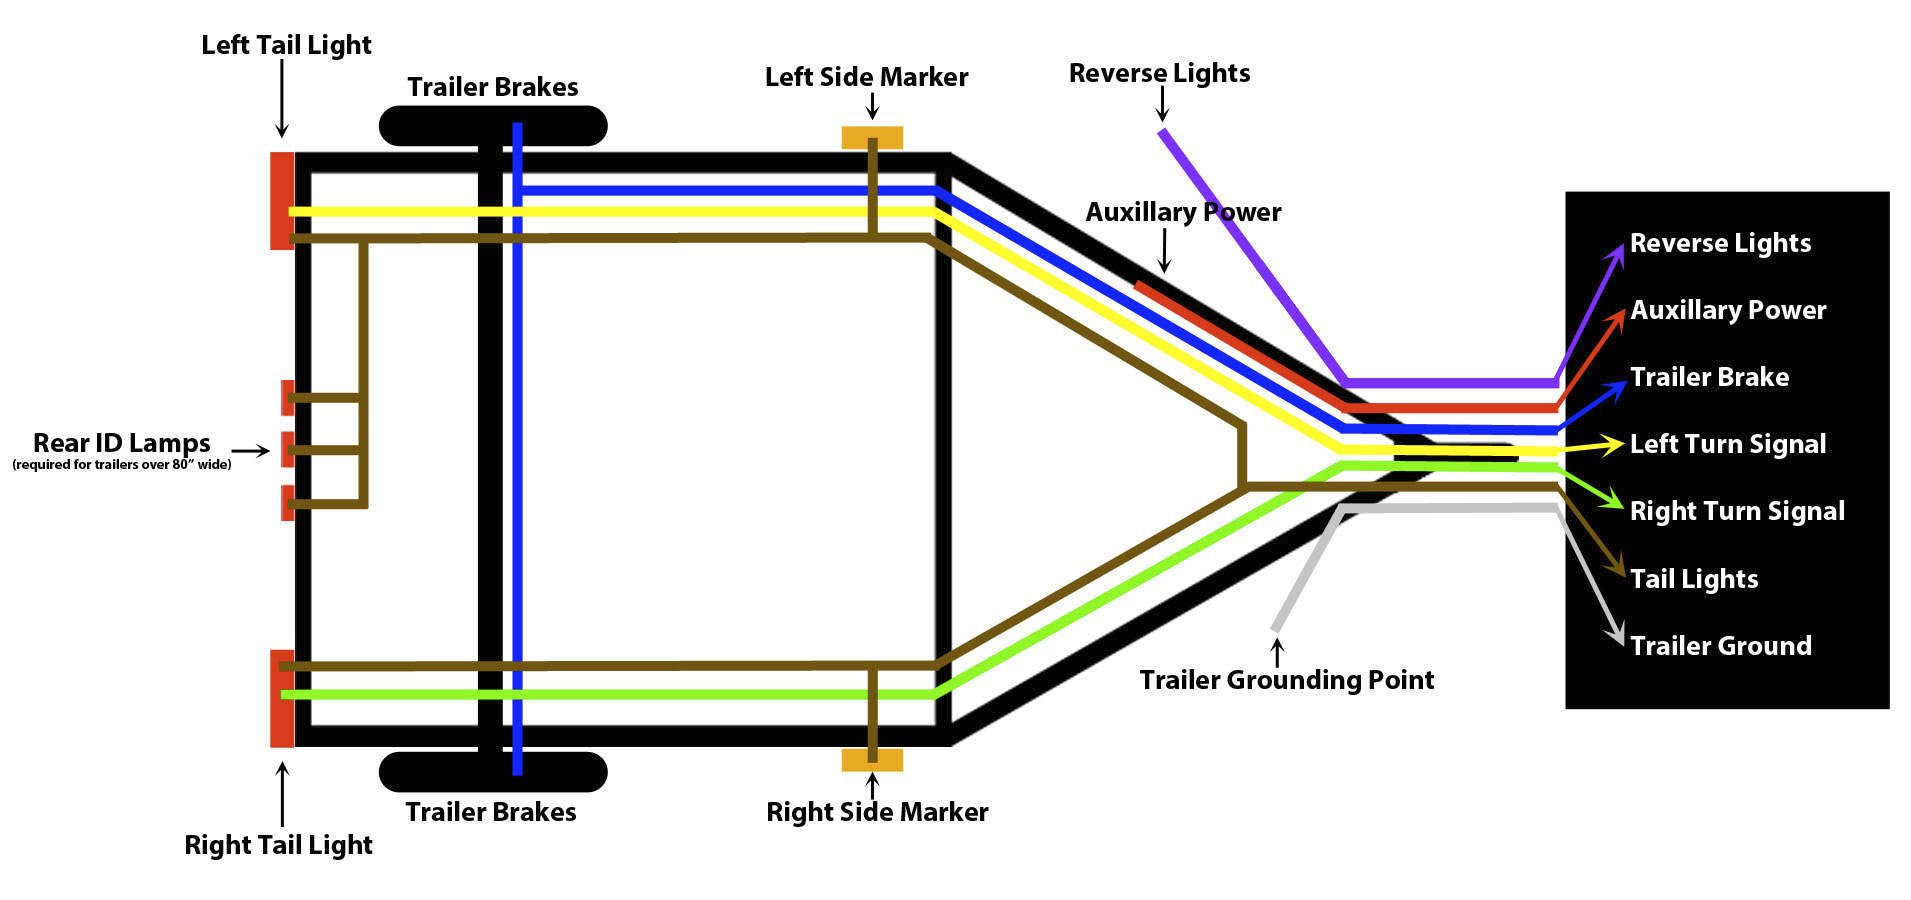 How To Wire Trailer Lights - Trailer Wiring Guide & Videos - 7 Way Trailer Light Wiring Diagram